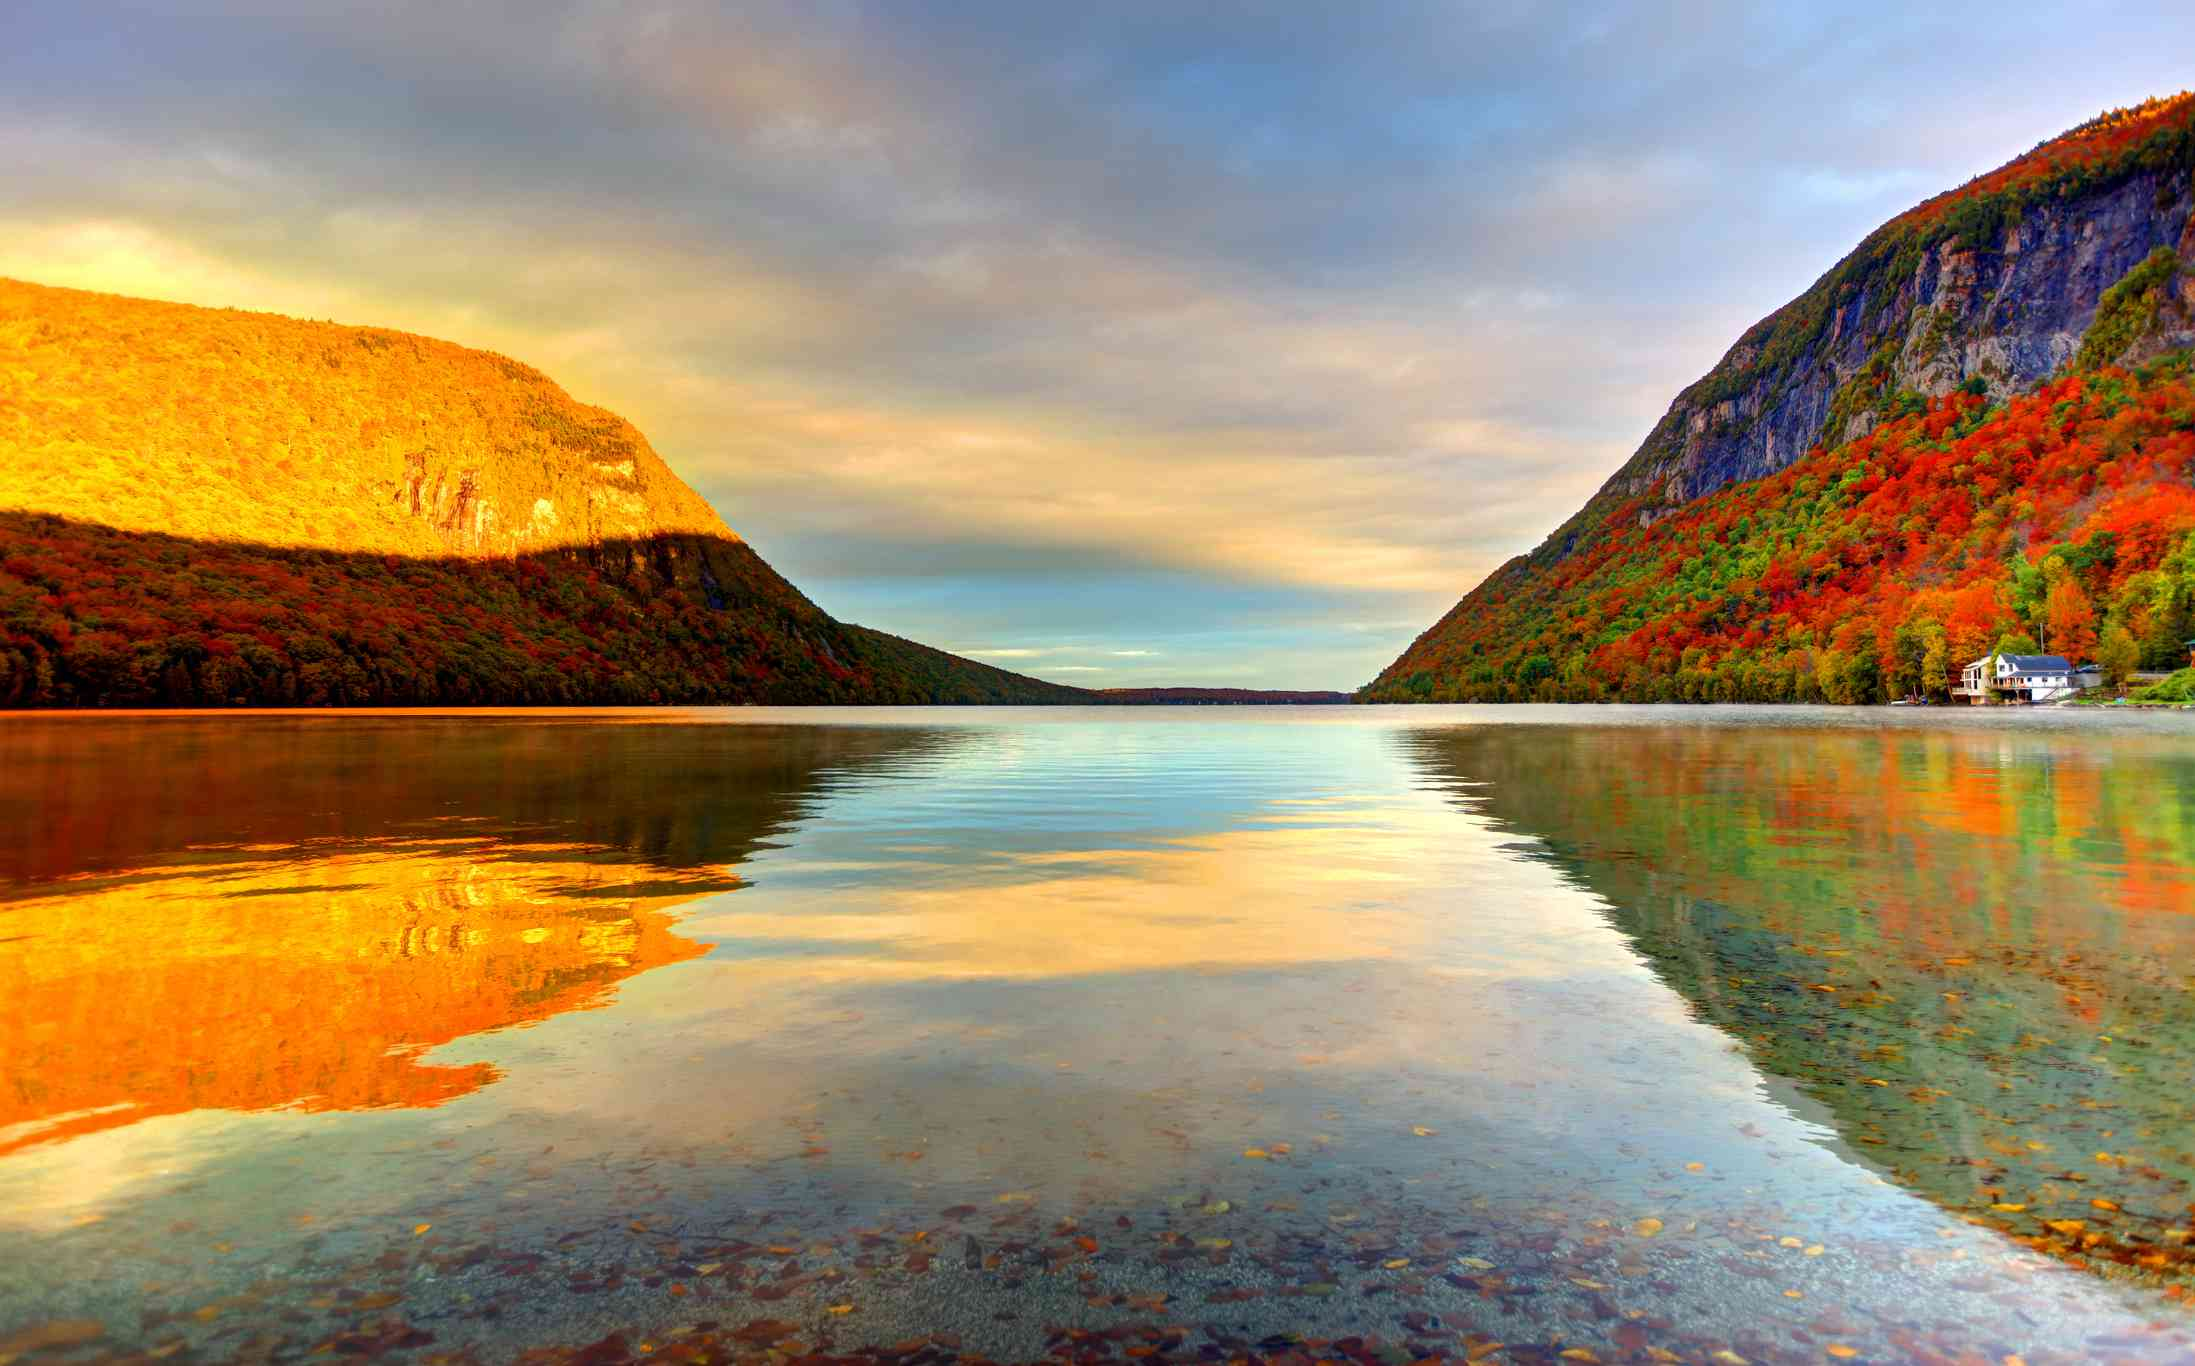 Lake Willoughby in Vermont